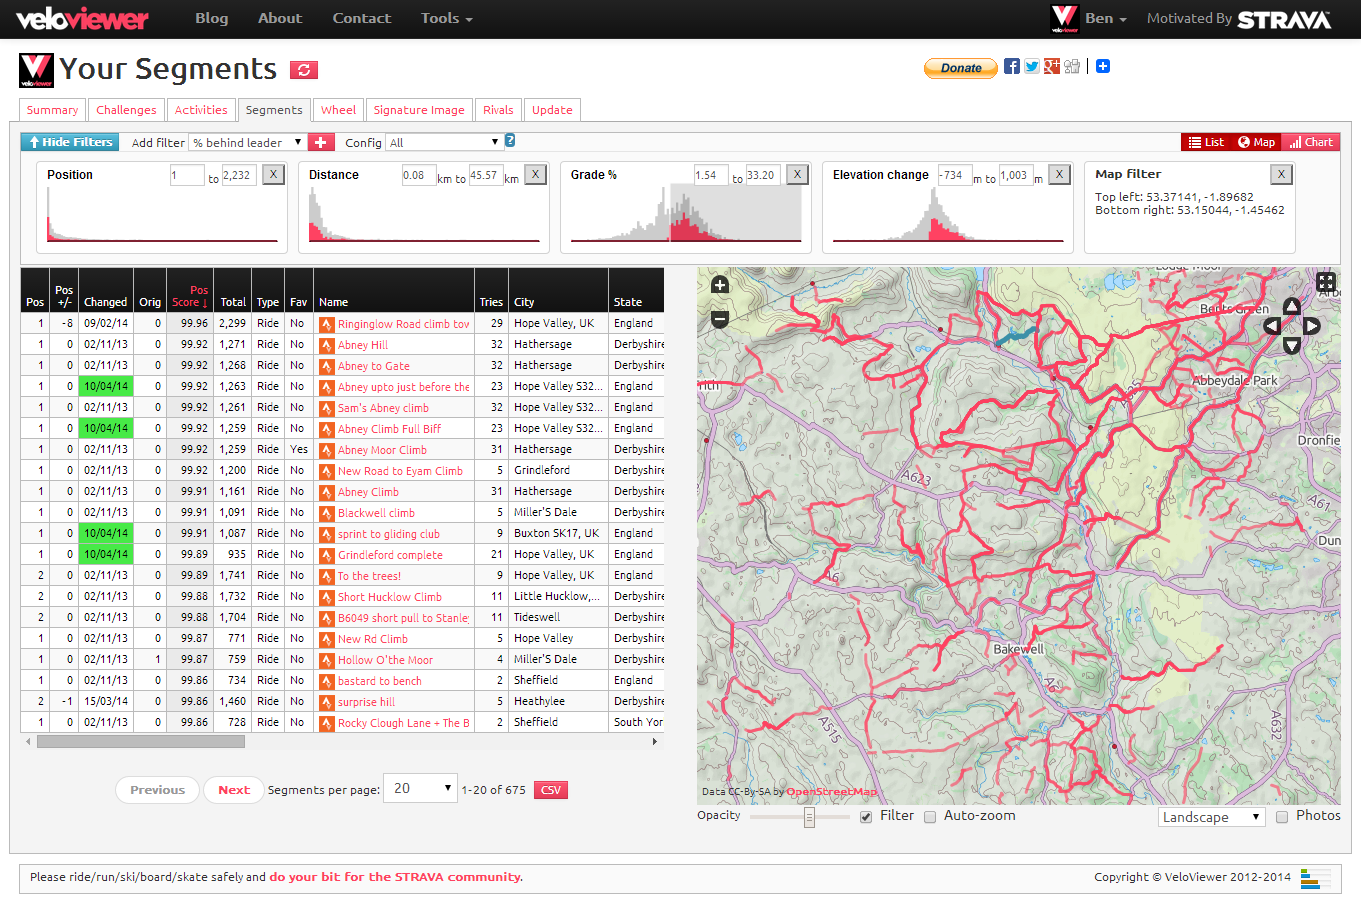 Welcome to VeloViewer!